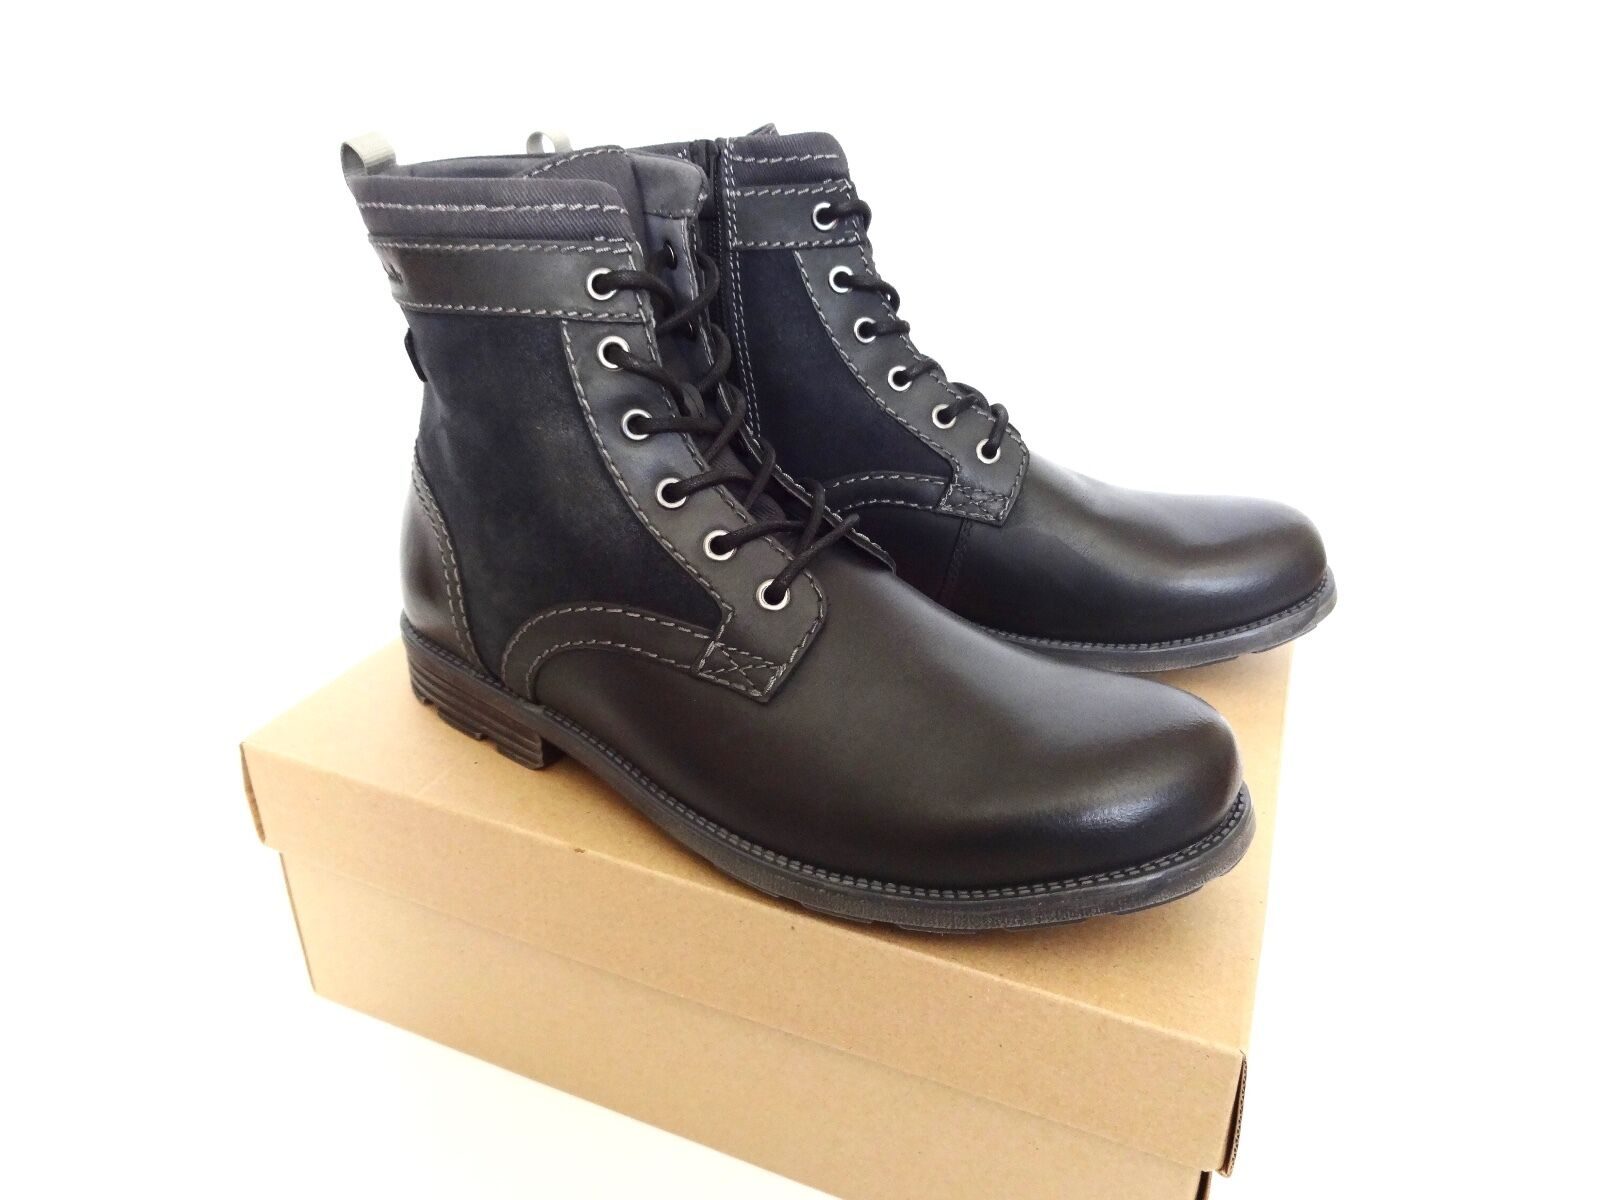 New Clarks Daria High Black Leather Lace Up Boots shoes size 13